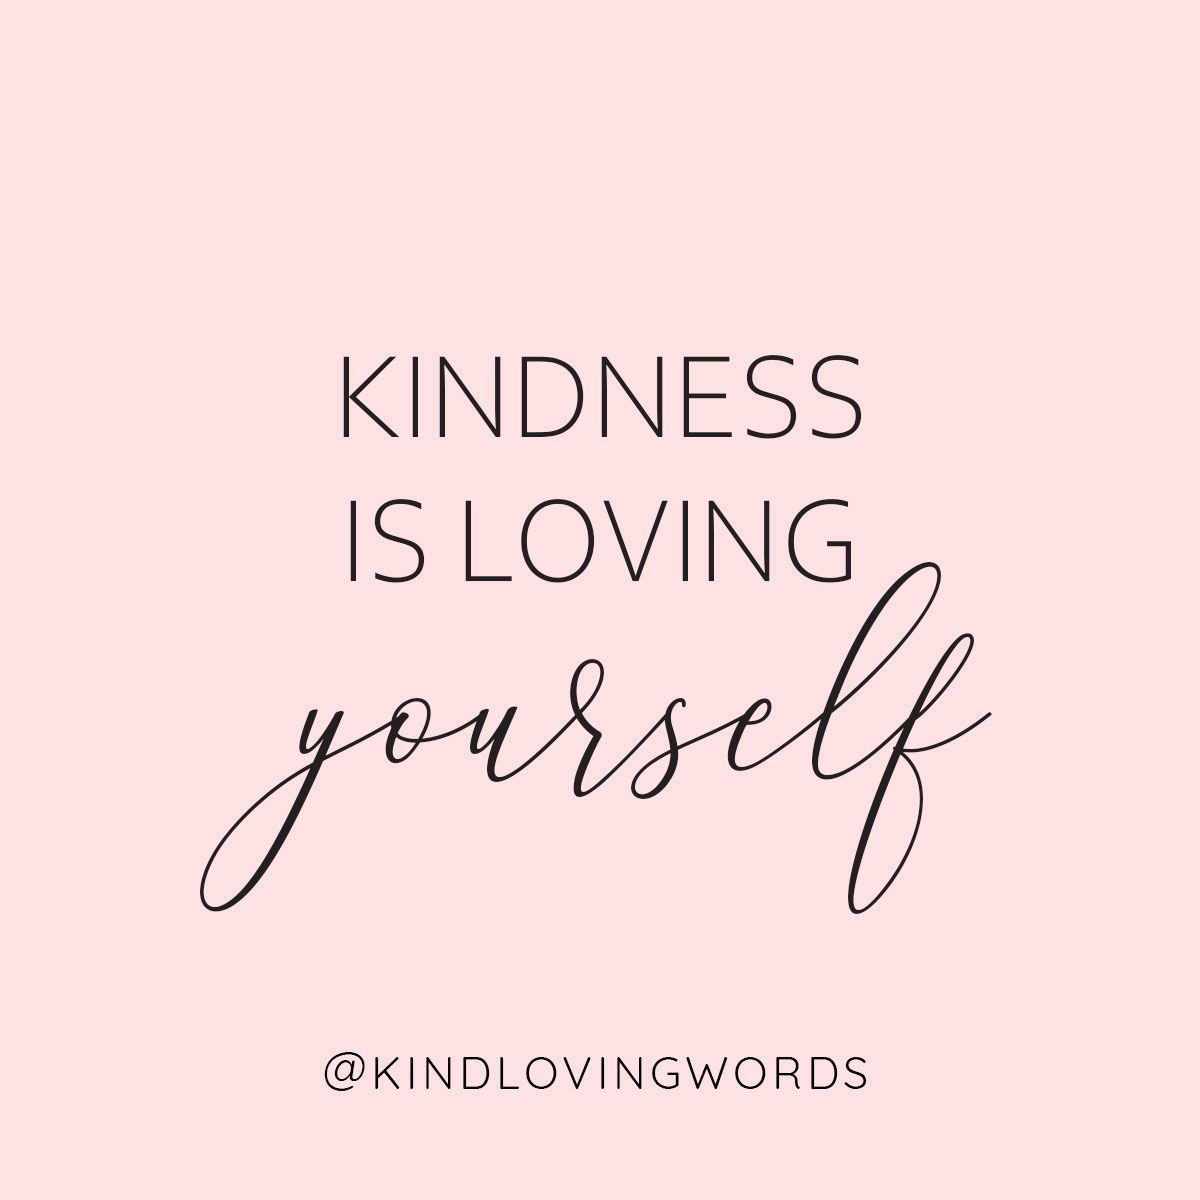 Kindness is loving yourself